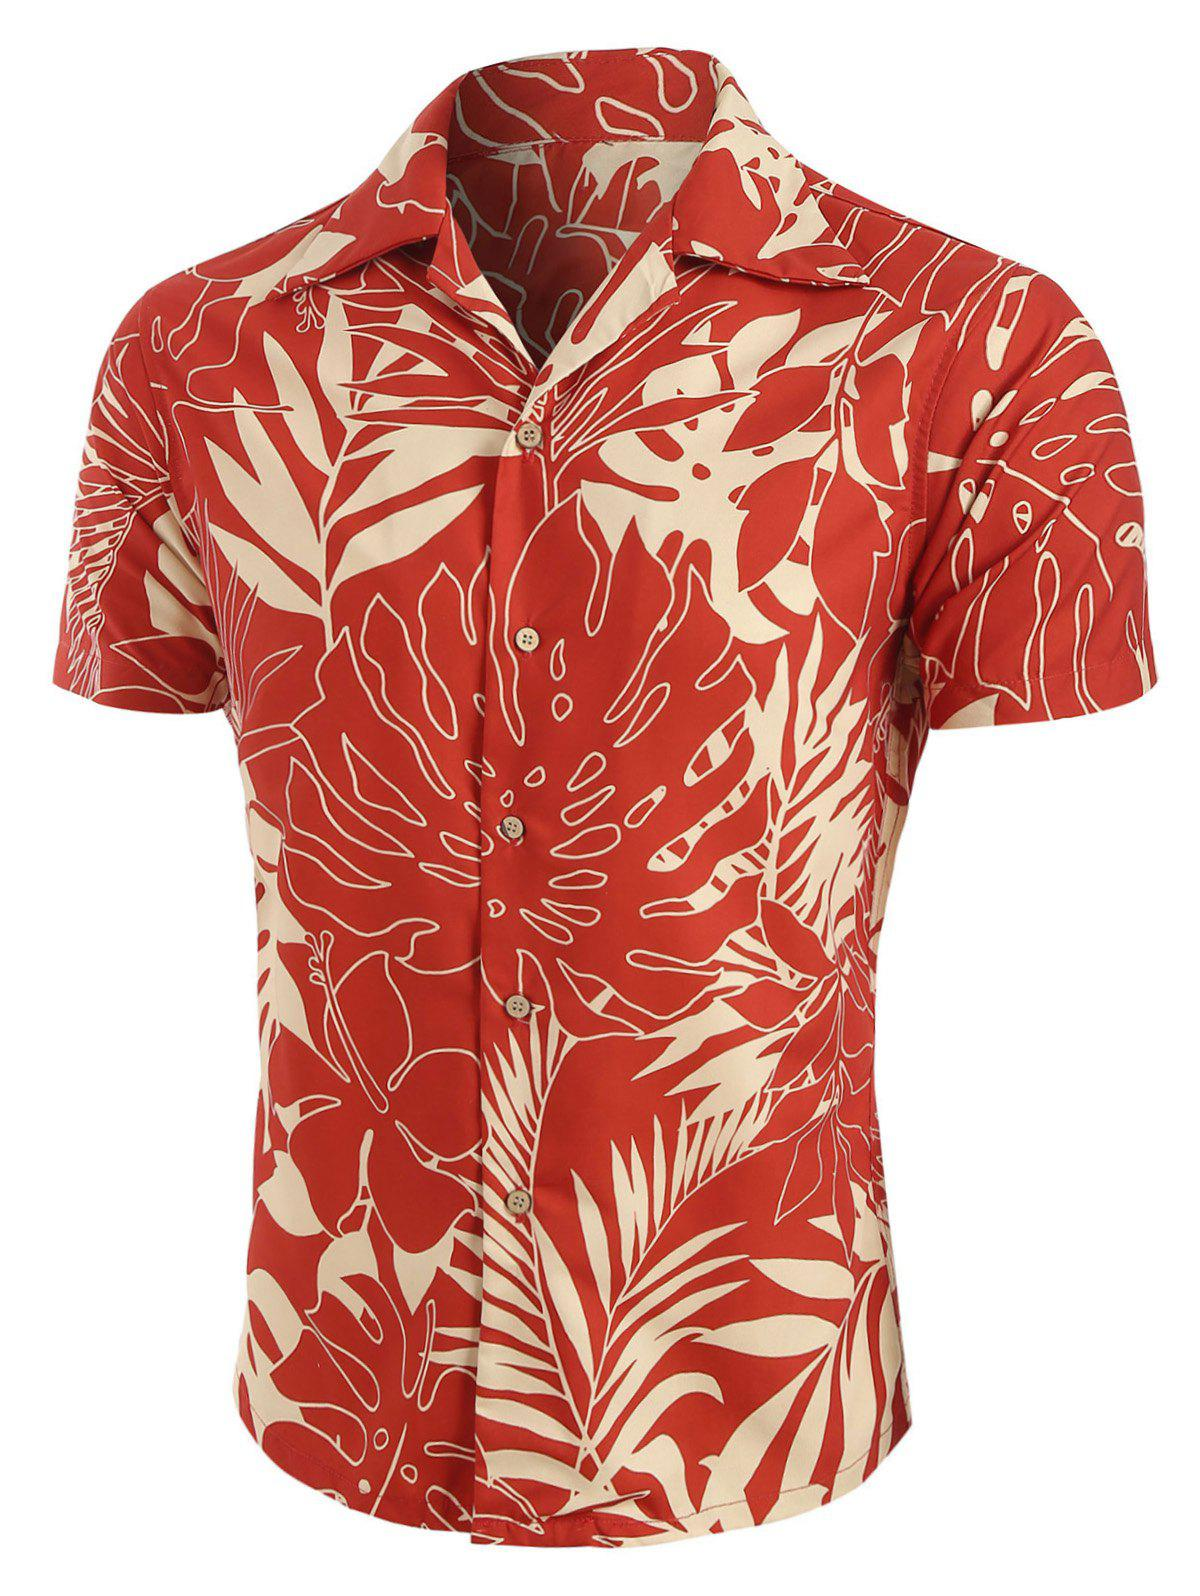 New Leaf Print Short Sleeves Shirt